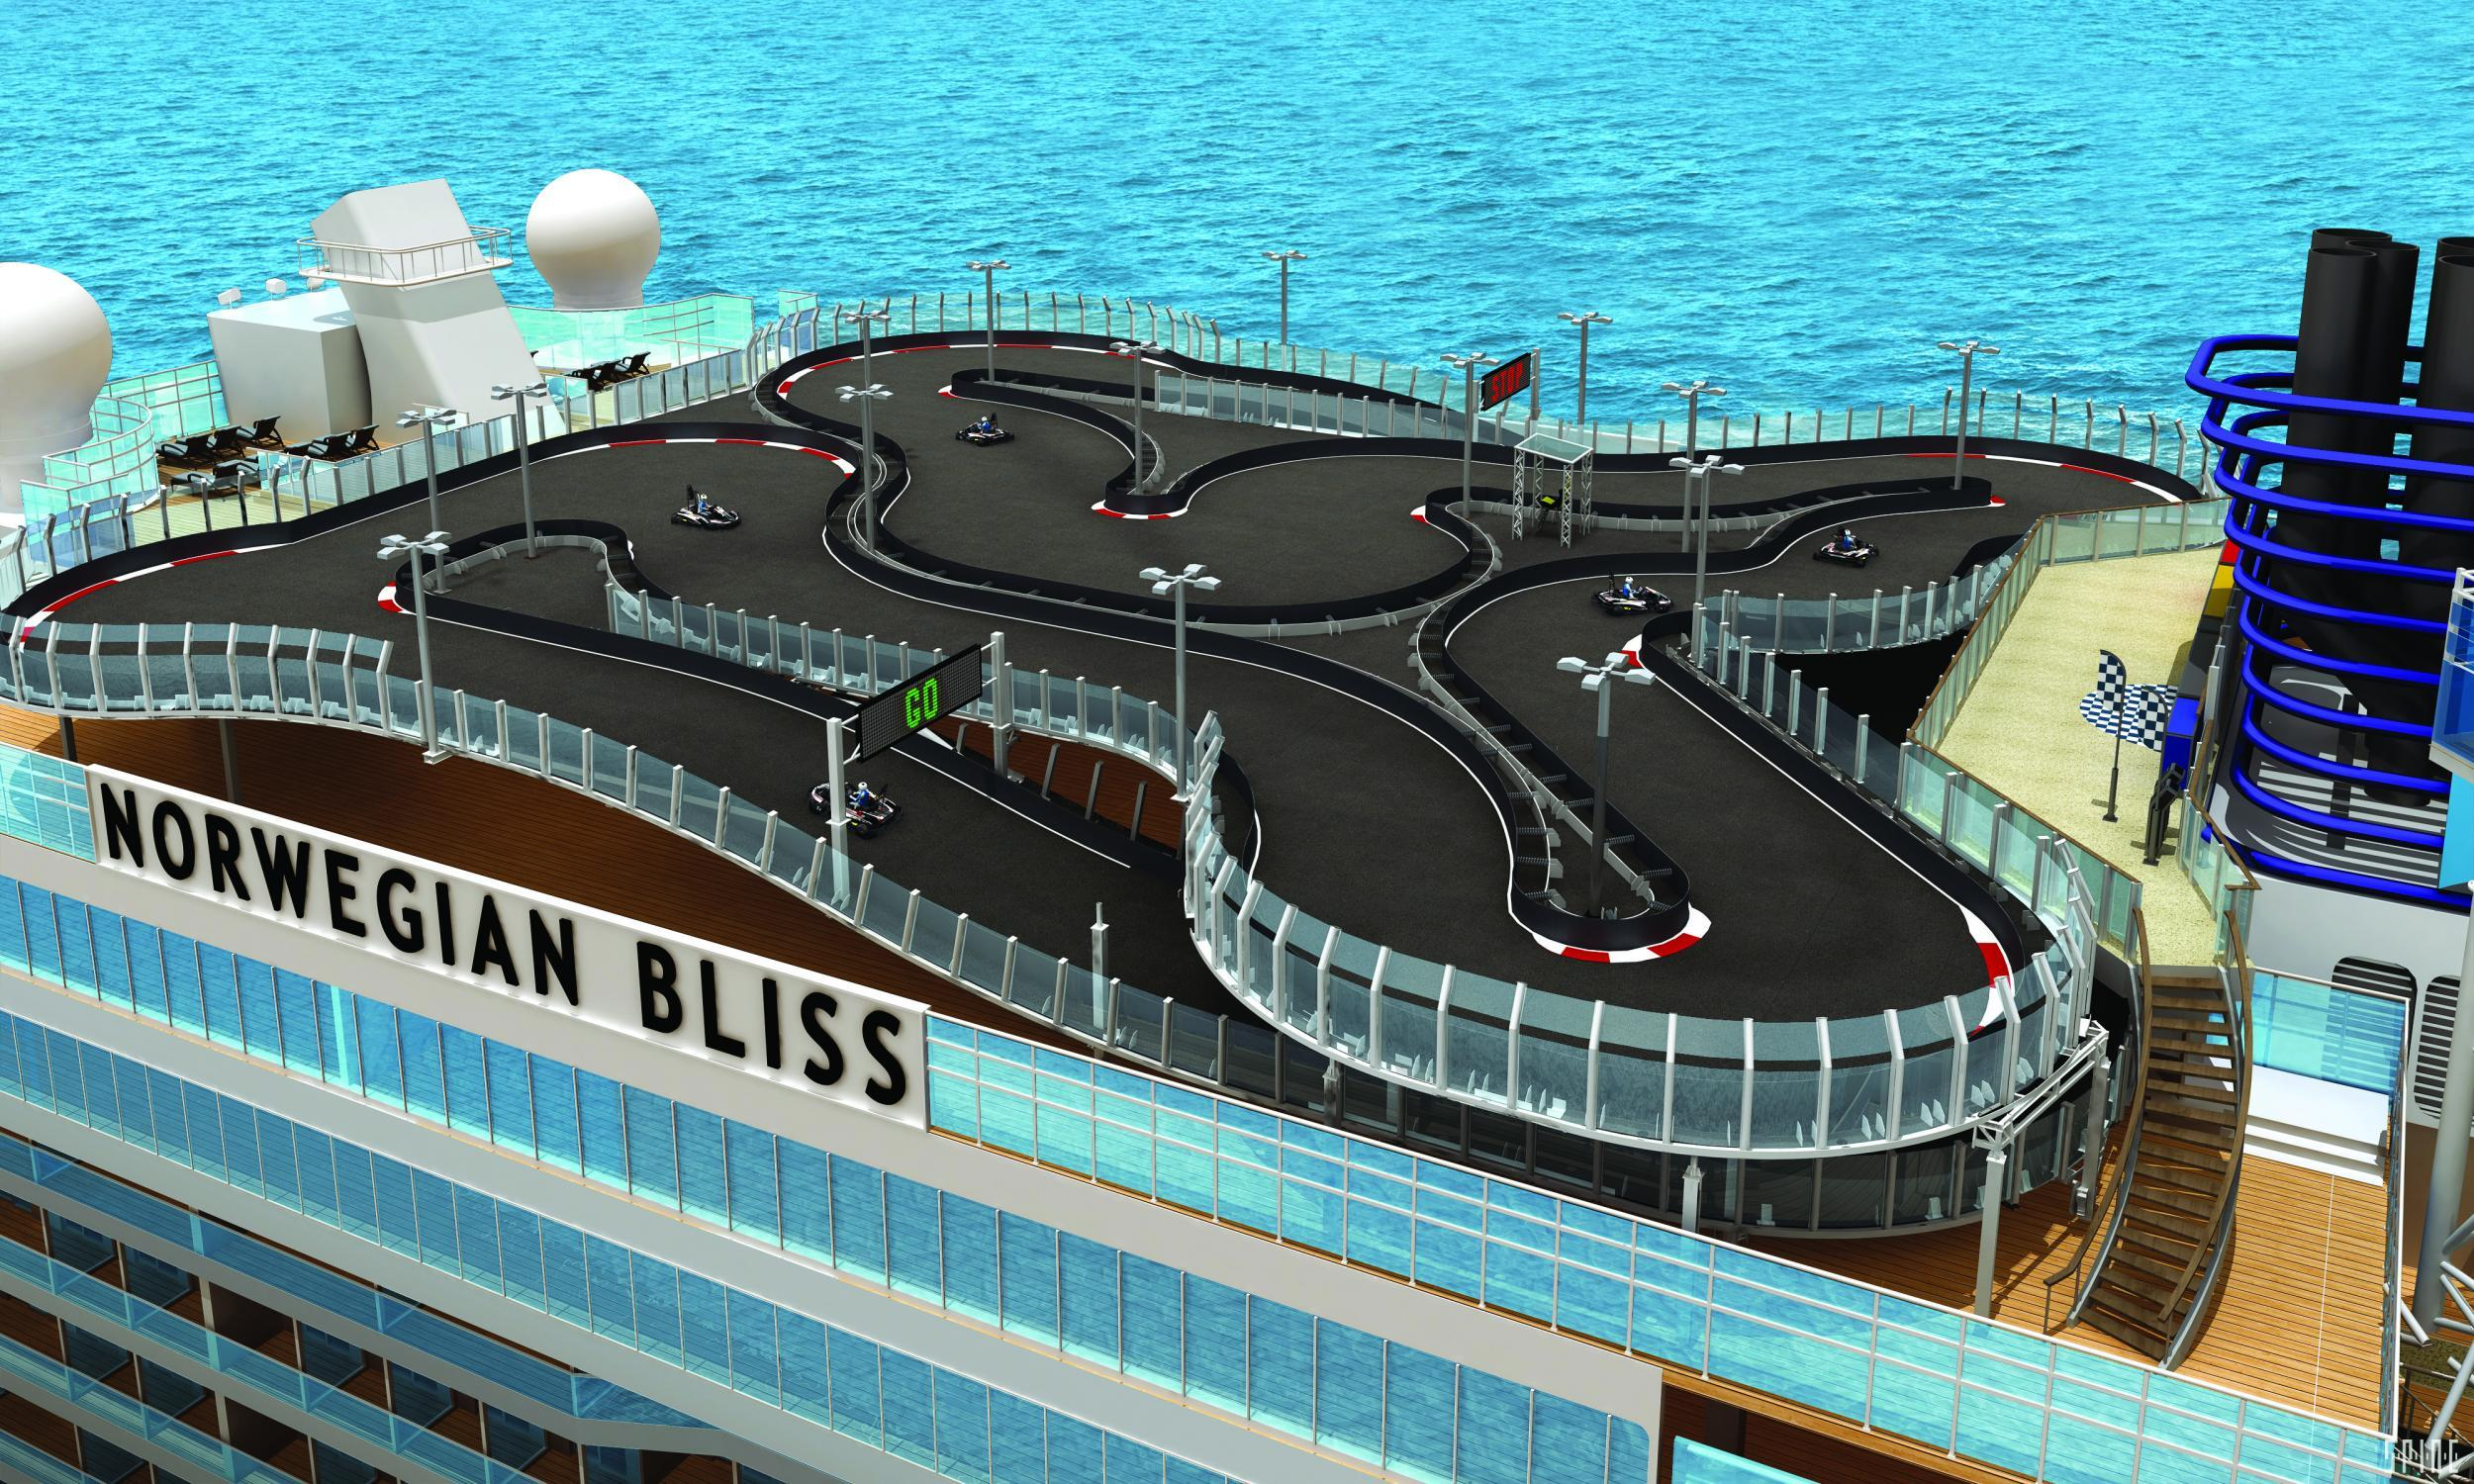 google kart over norge New cruise ship will feature 1,000ft go kart race track | The  google kart over norge